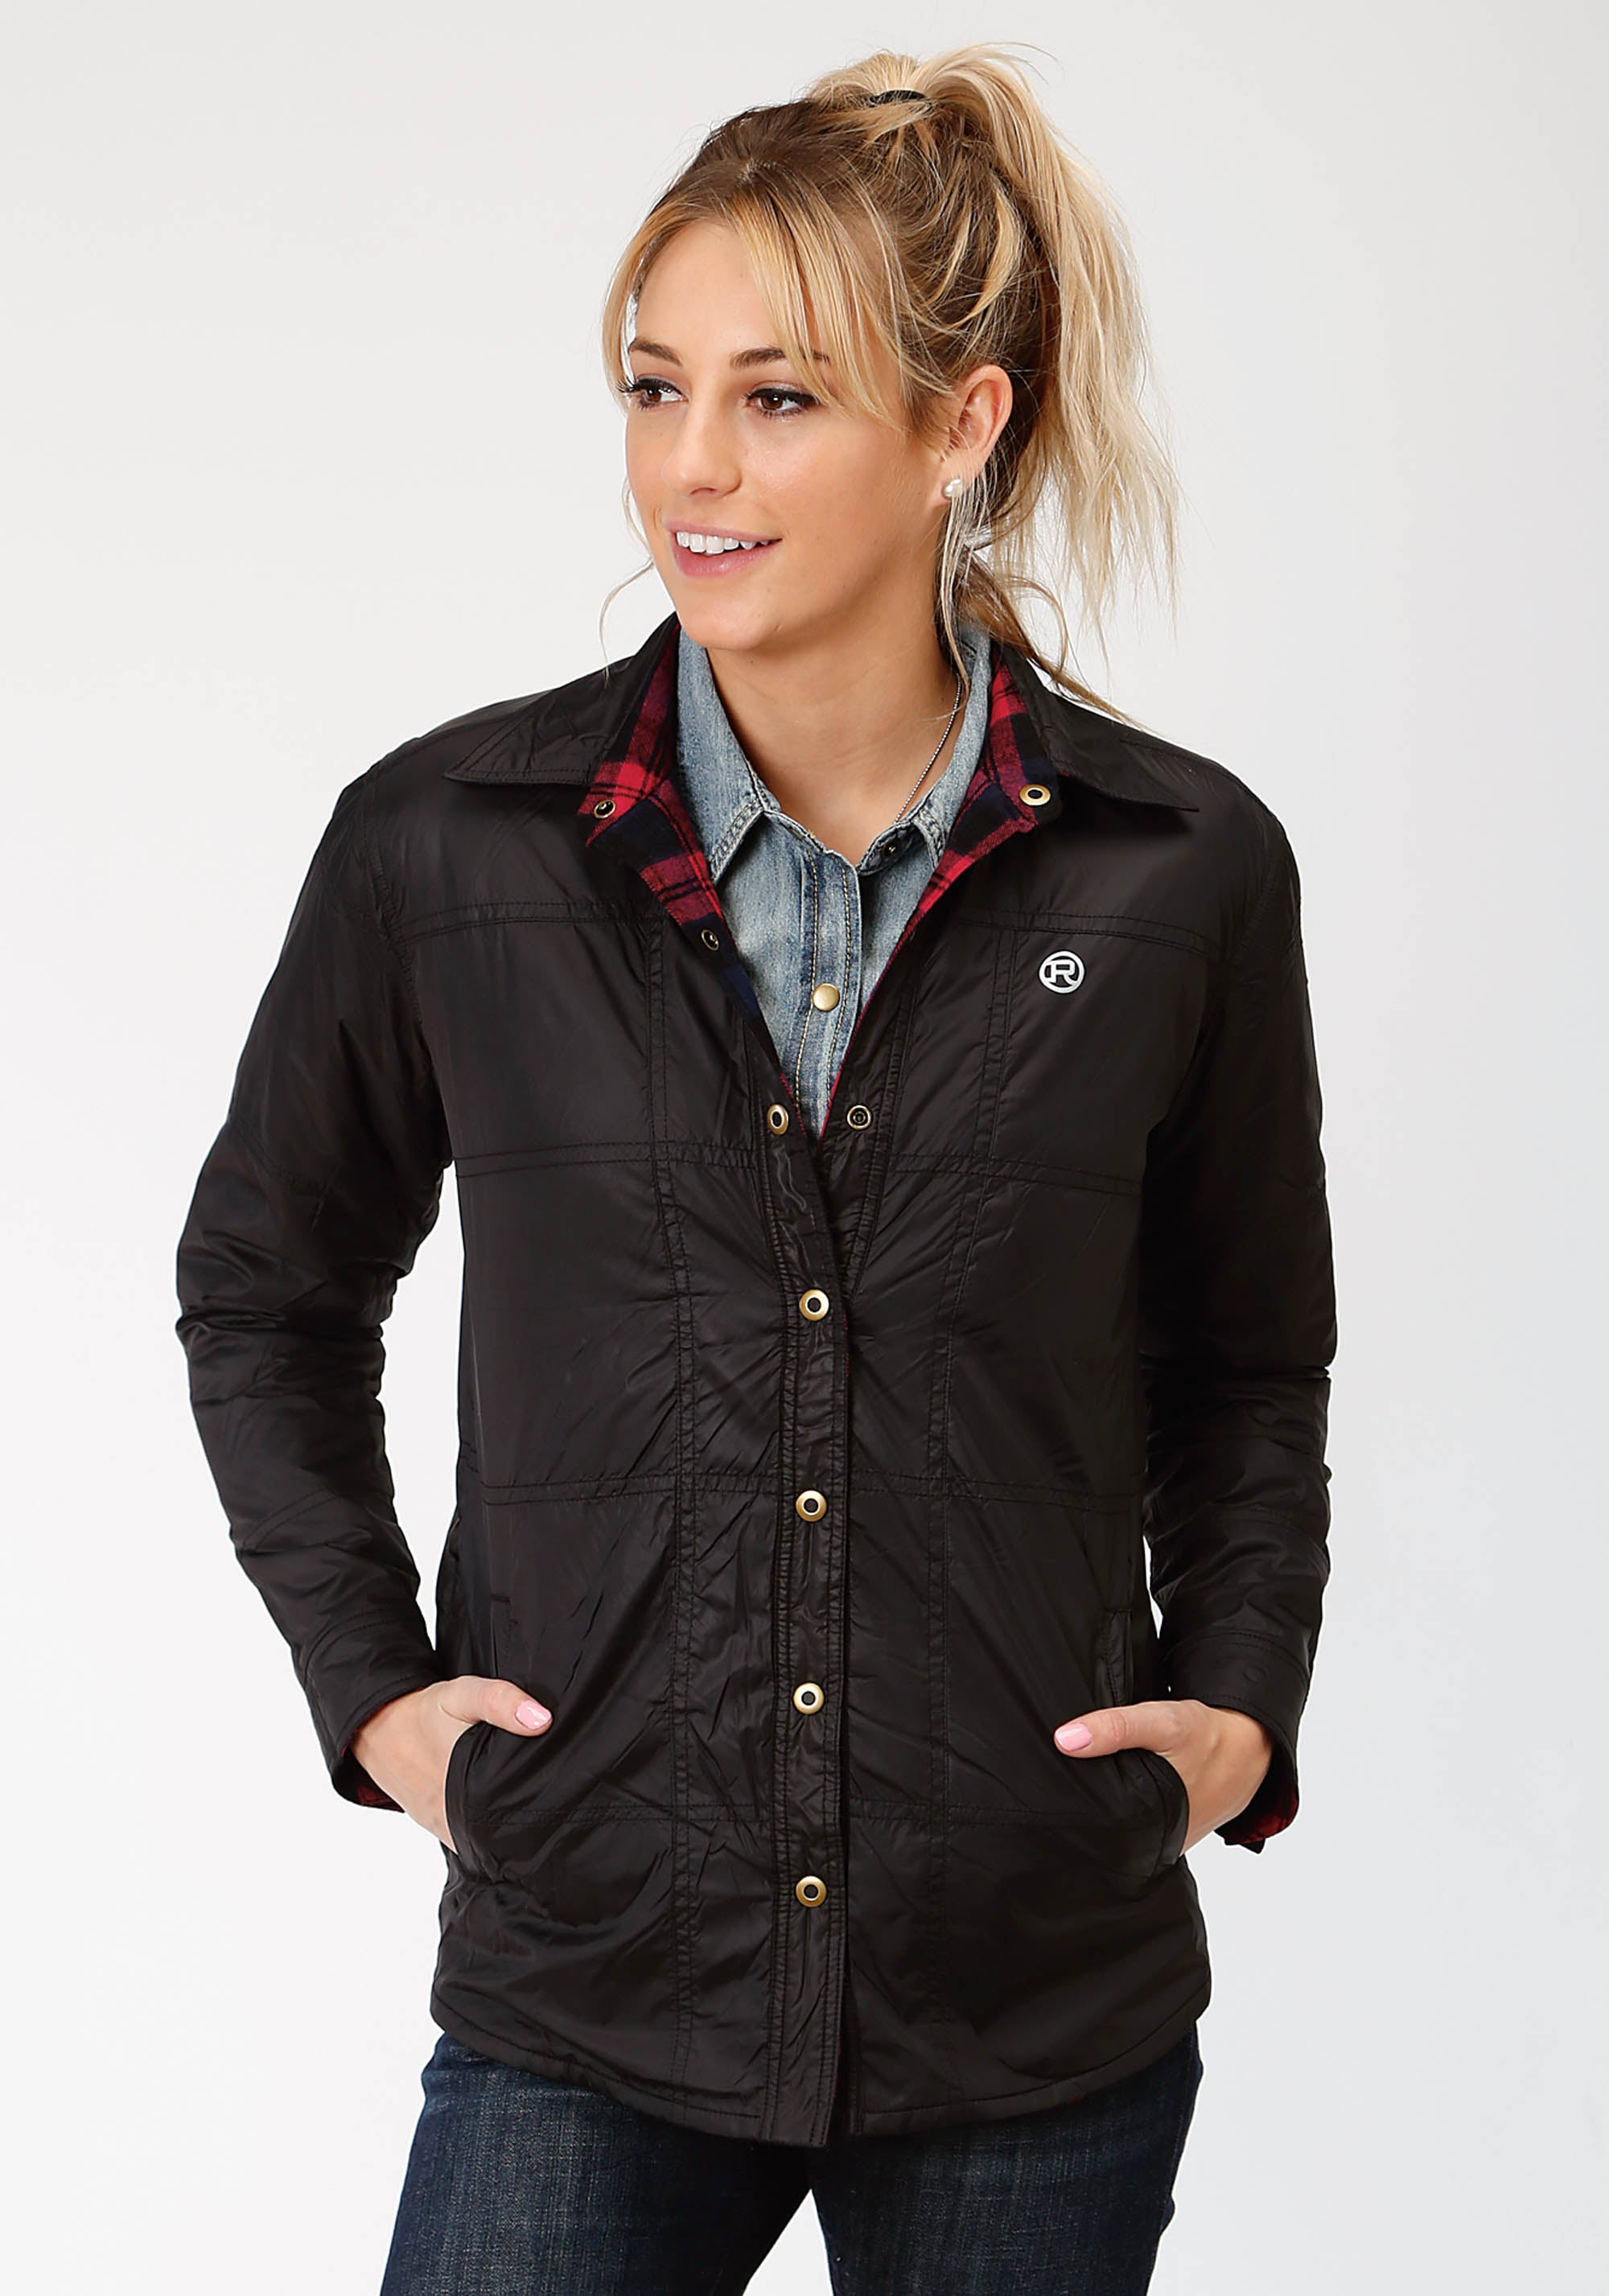 ROPER WOMENS BLACK 9389 BLACK POLY/FLANNEL REVERSIBLE JKT  JACKET